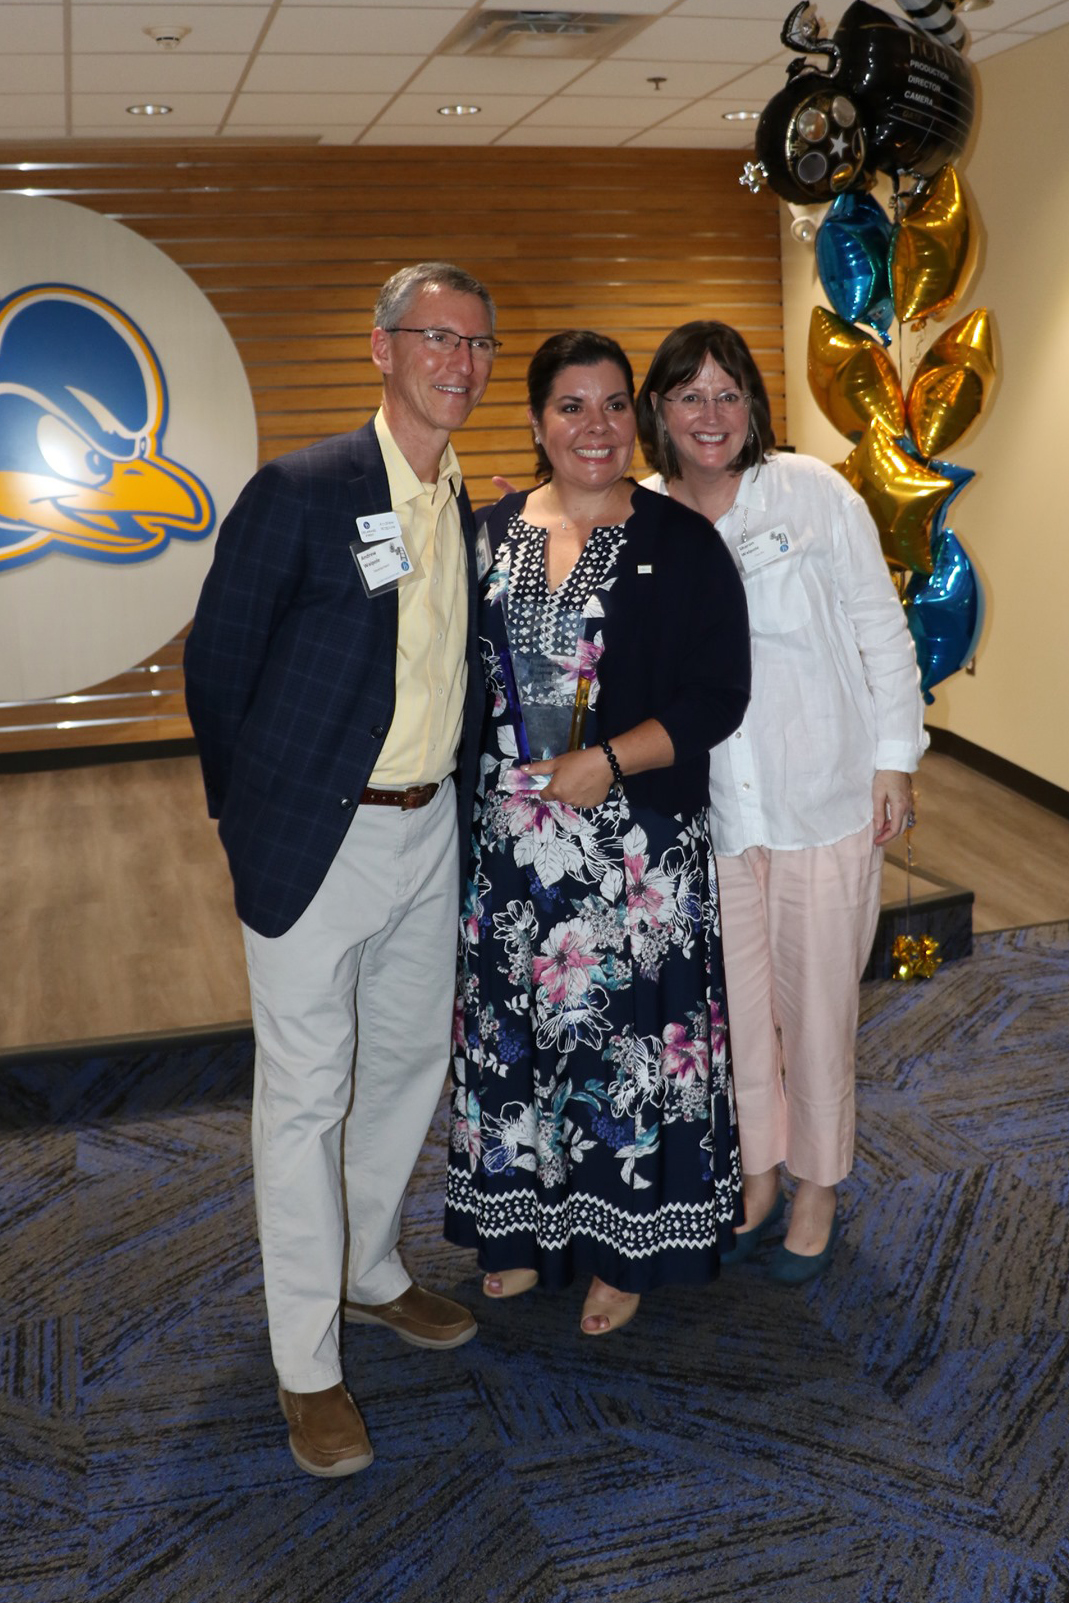 Andrew Walpole and Sharon Walpole pose with award winner Cary Riches